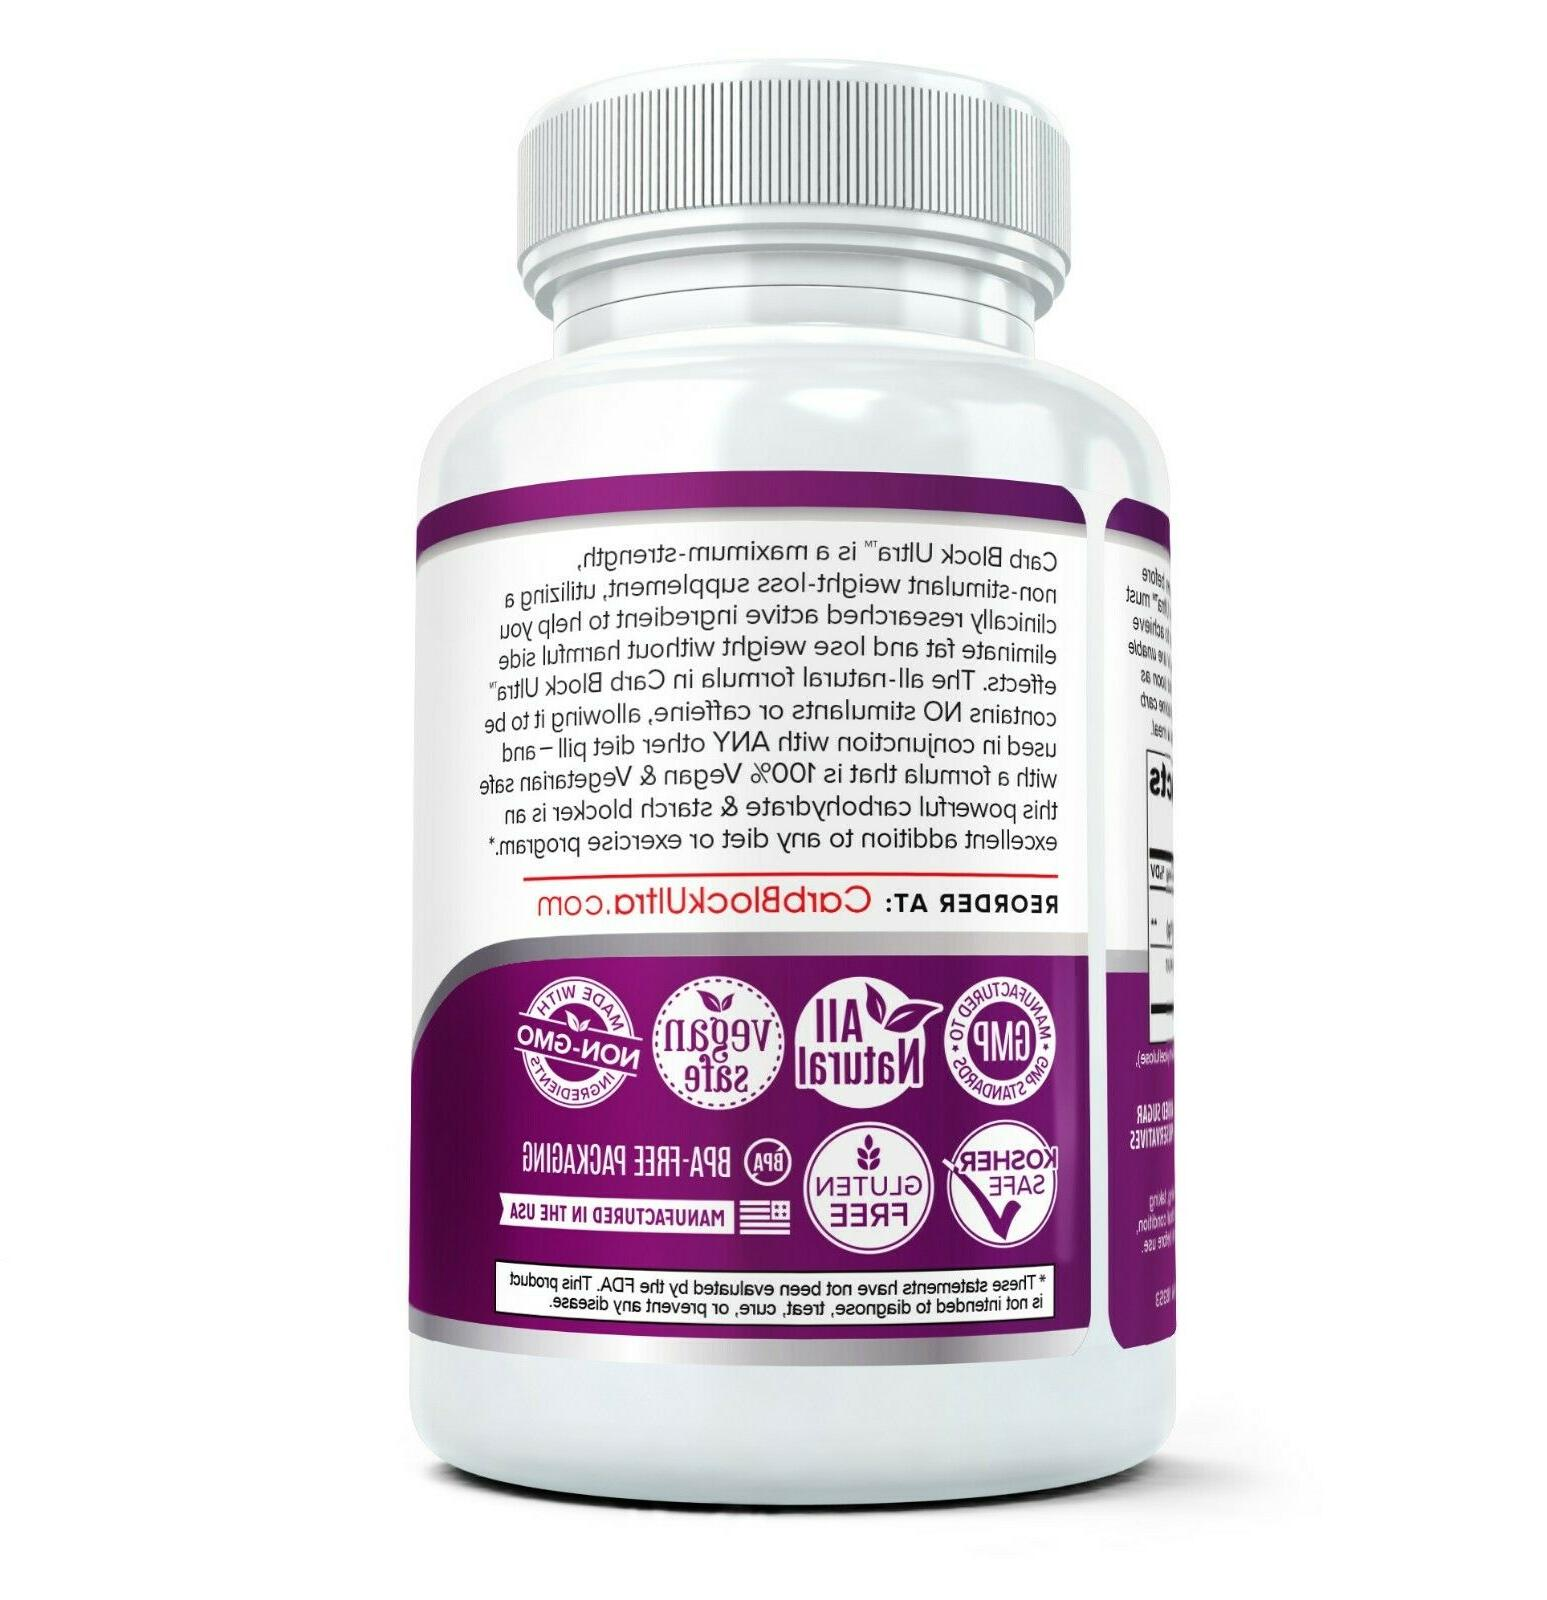 FitMiss Tone Carb Block Ultra: Loss & for